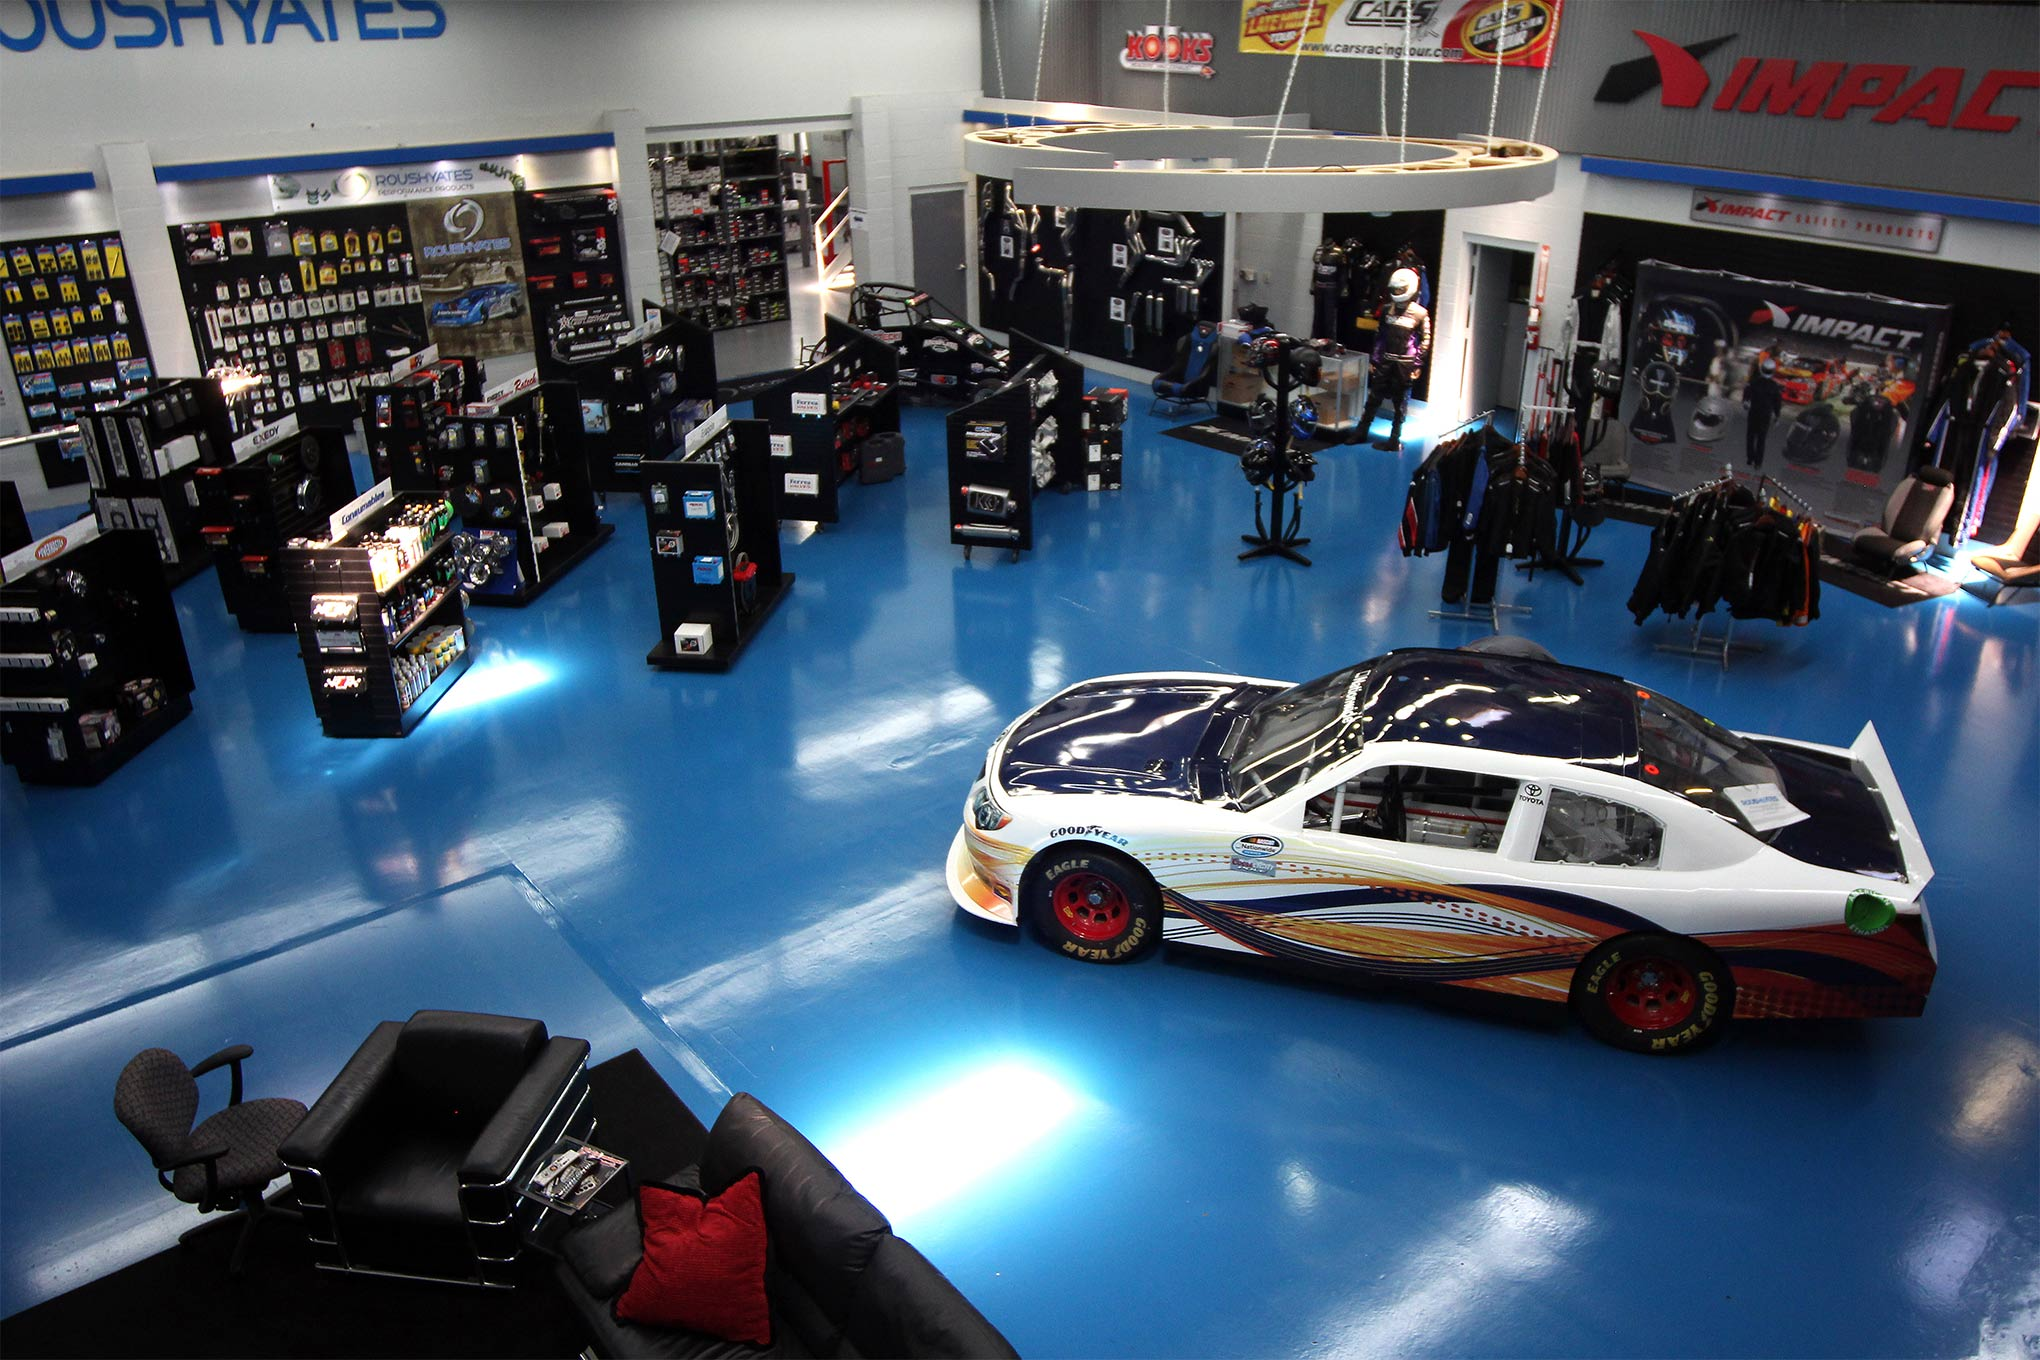 Roush Yates Performance Parts' main showroom is filled with racecars and displays for the new parts the company carries, but just beyond that doorway in the top of the frame is racer nirvana--several thousand square feet of lightly used parts off of NASCAR Cup cars that you can purchase for a fraction of the new price.